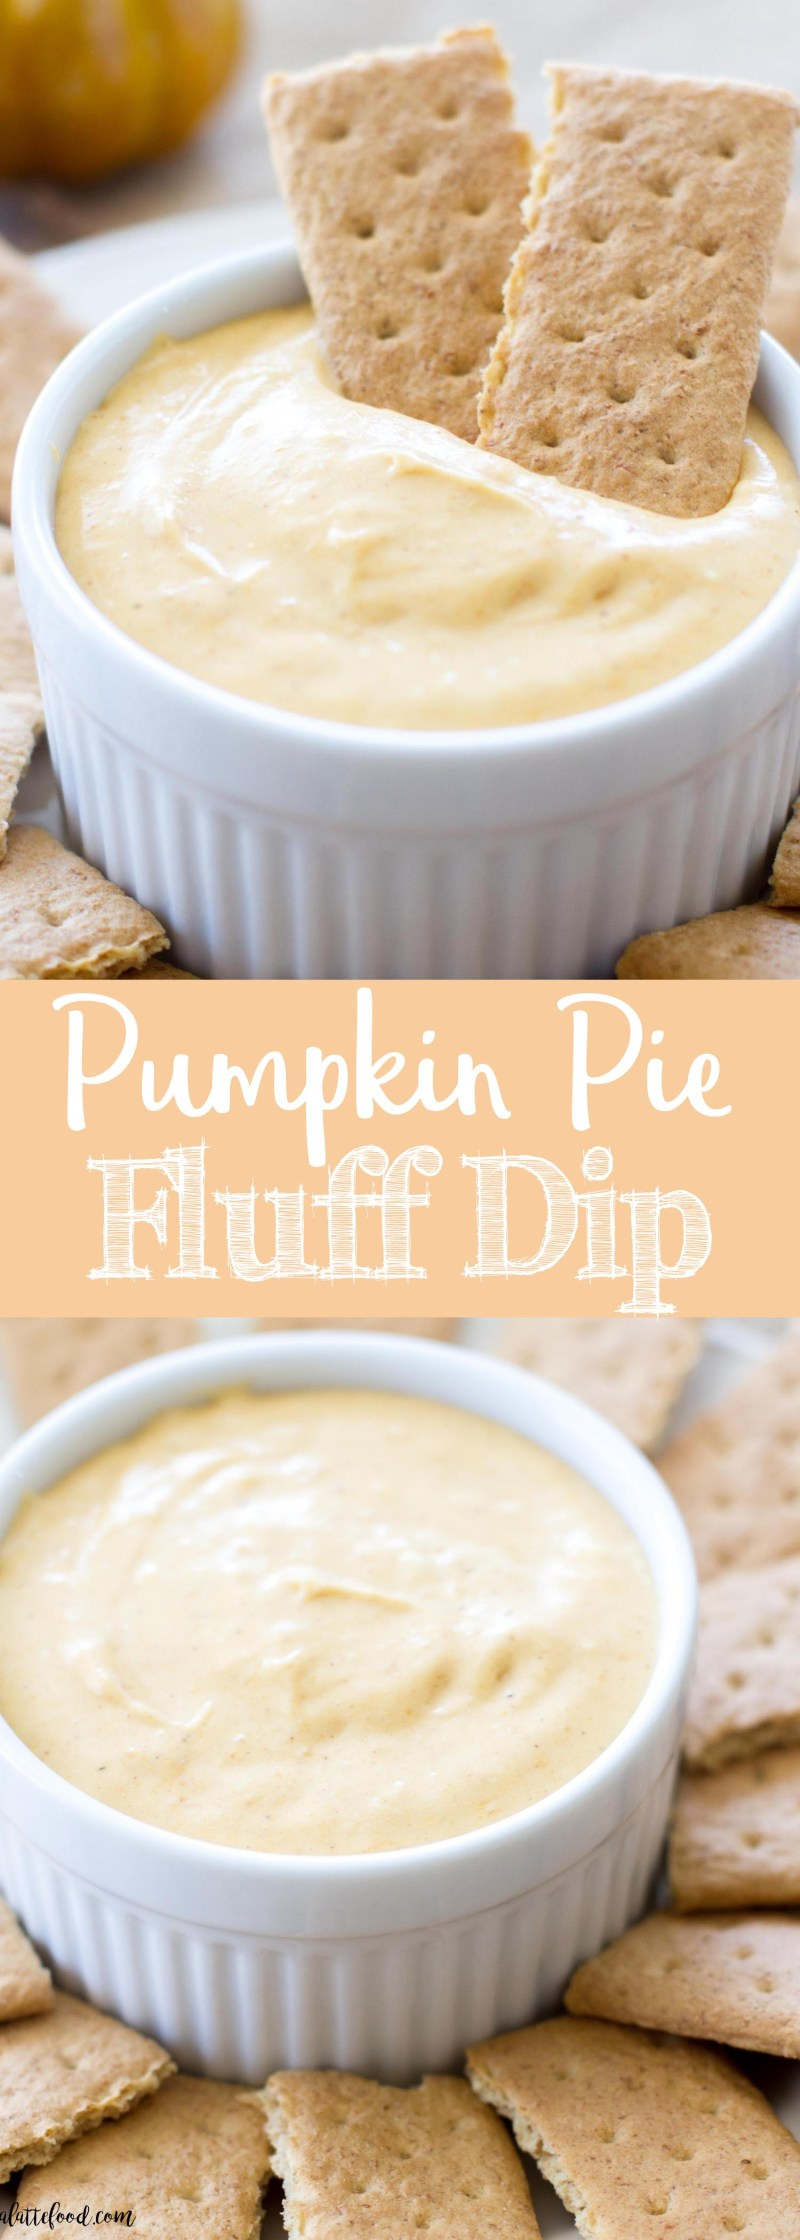 This Pumpkin Pie Fluff Dip is a sweet dessert dip tastes like pumpkin pie cheesecake! Made with real pumpkin puree, marshmallow fluff, and cream cheese, this dip is an easy Thanksgiving appetizer or Thanksgiving dessert!